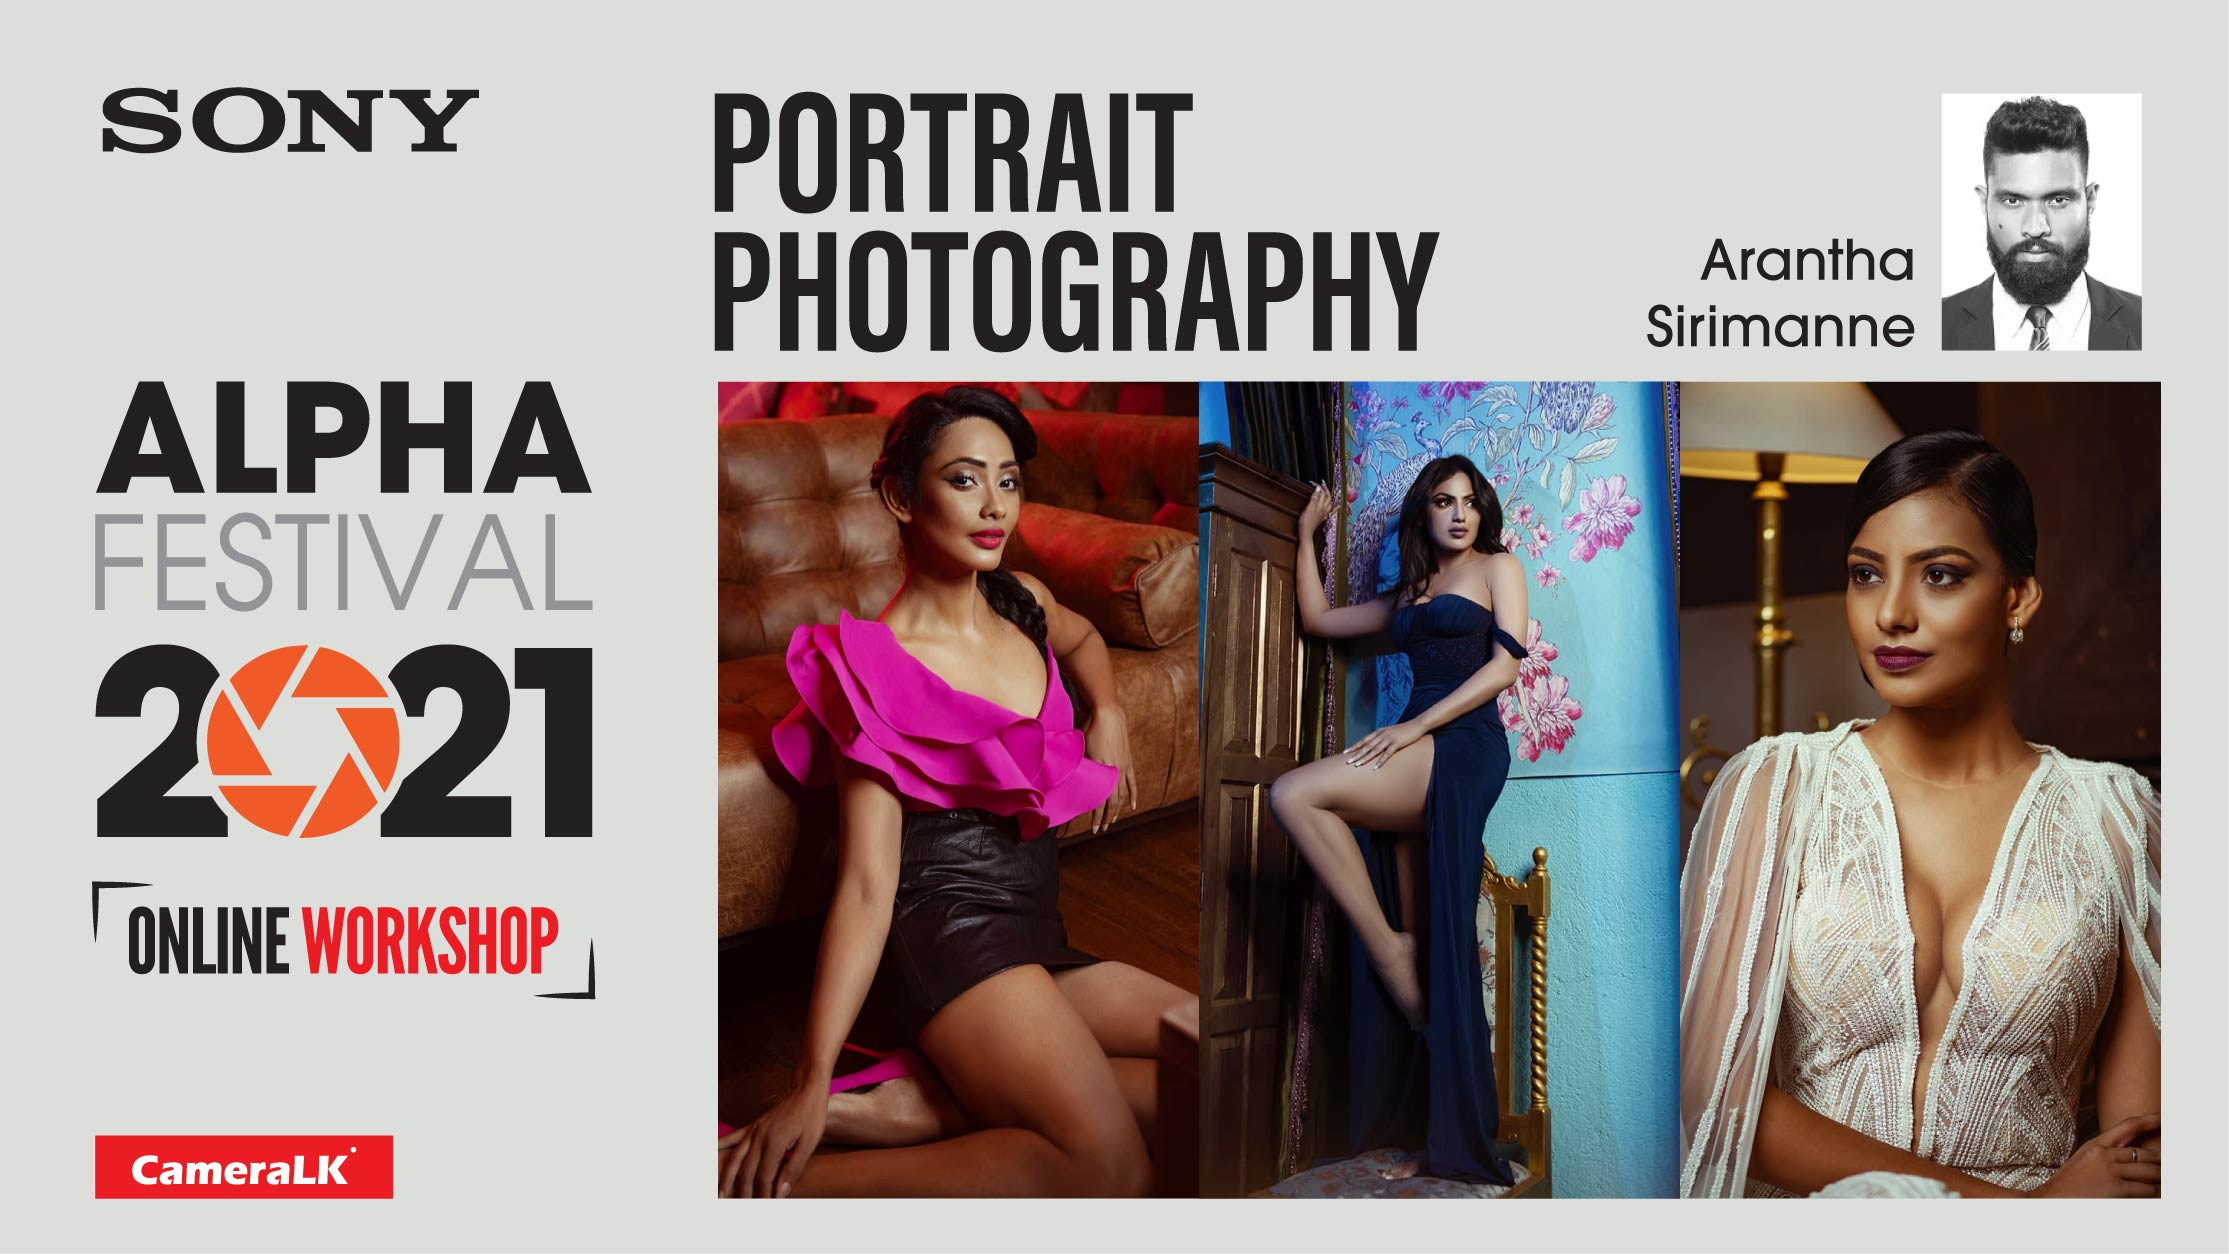 Portrait Photography Workshop By Arantha Sirimanne